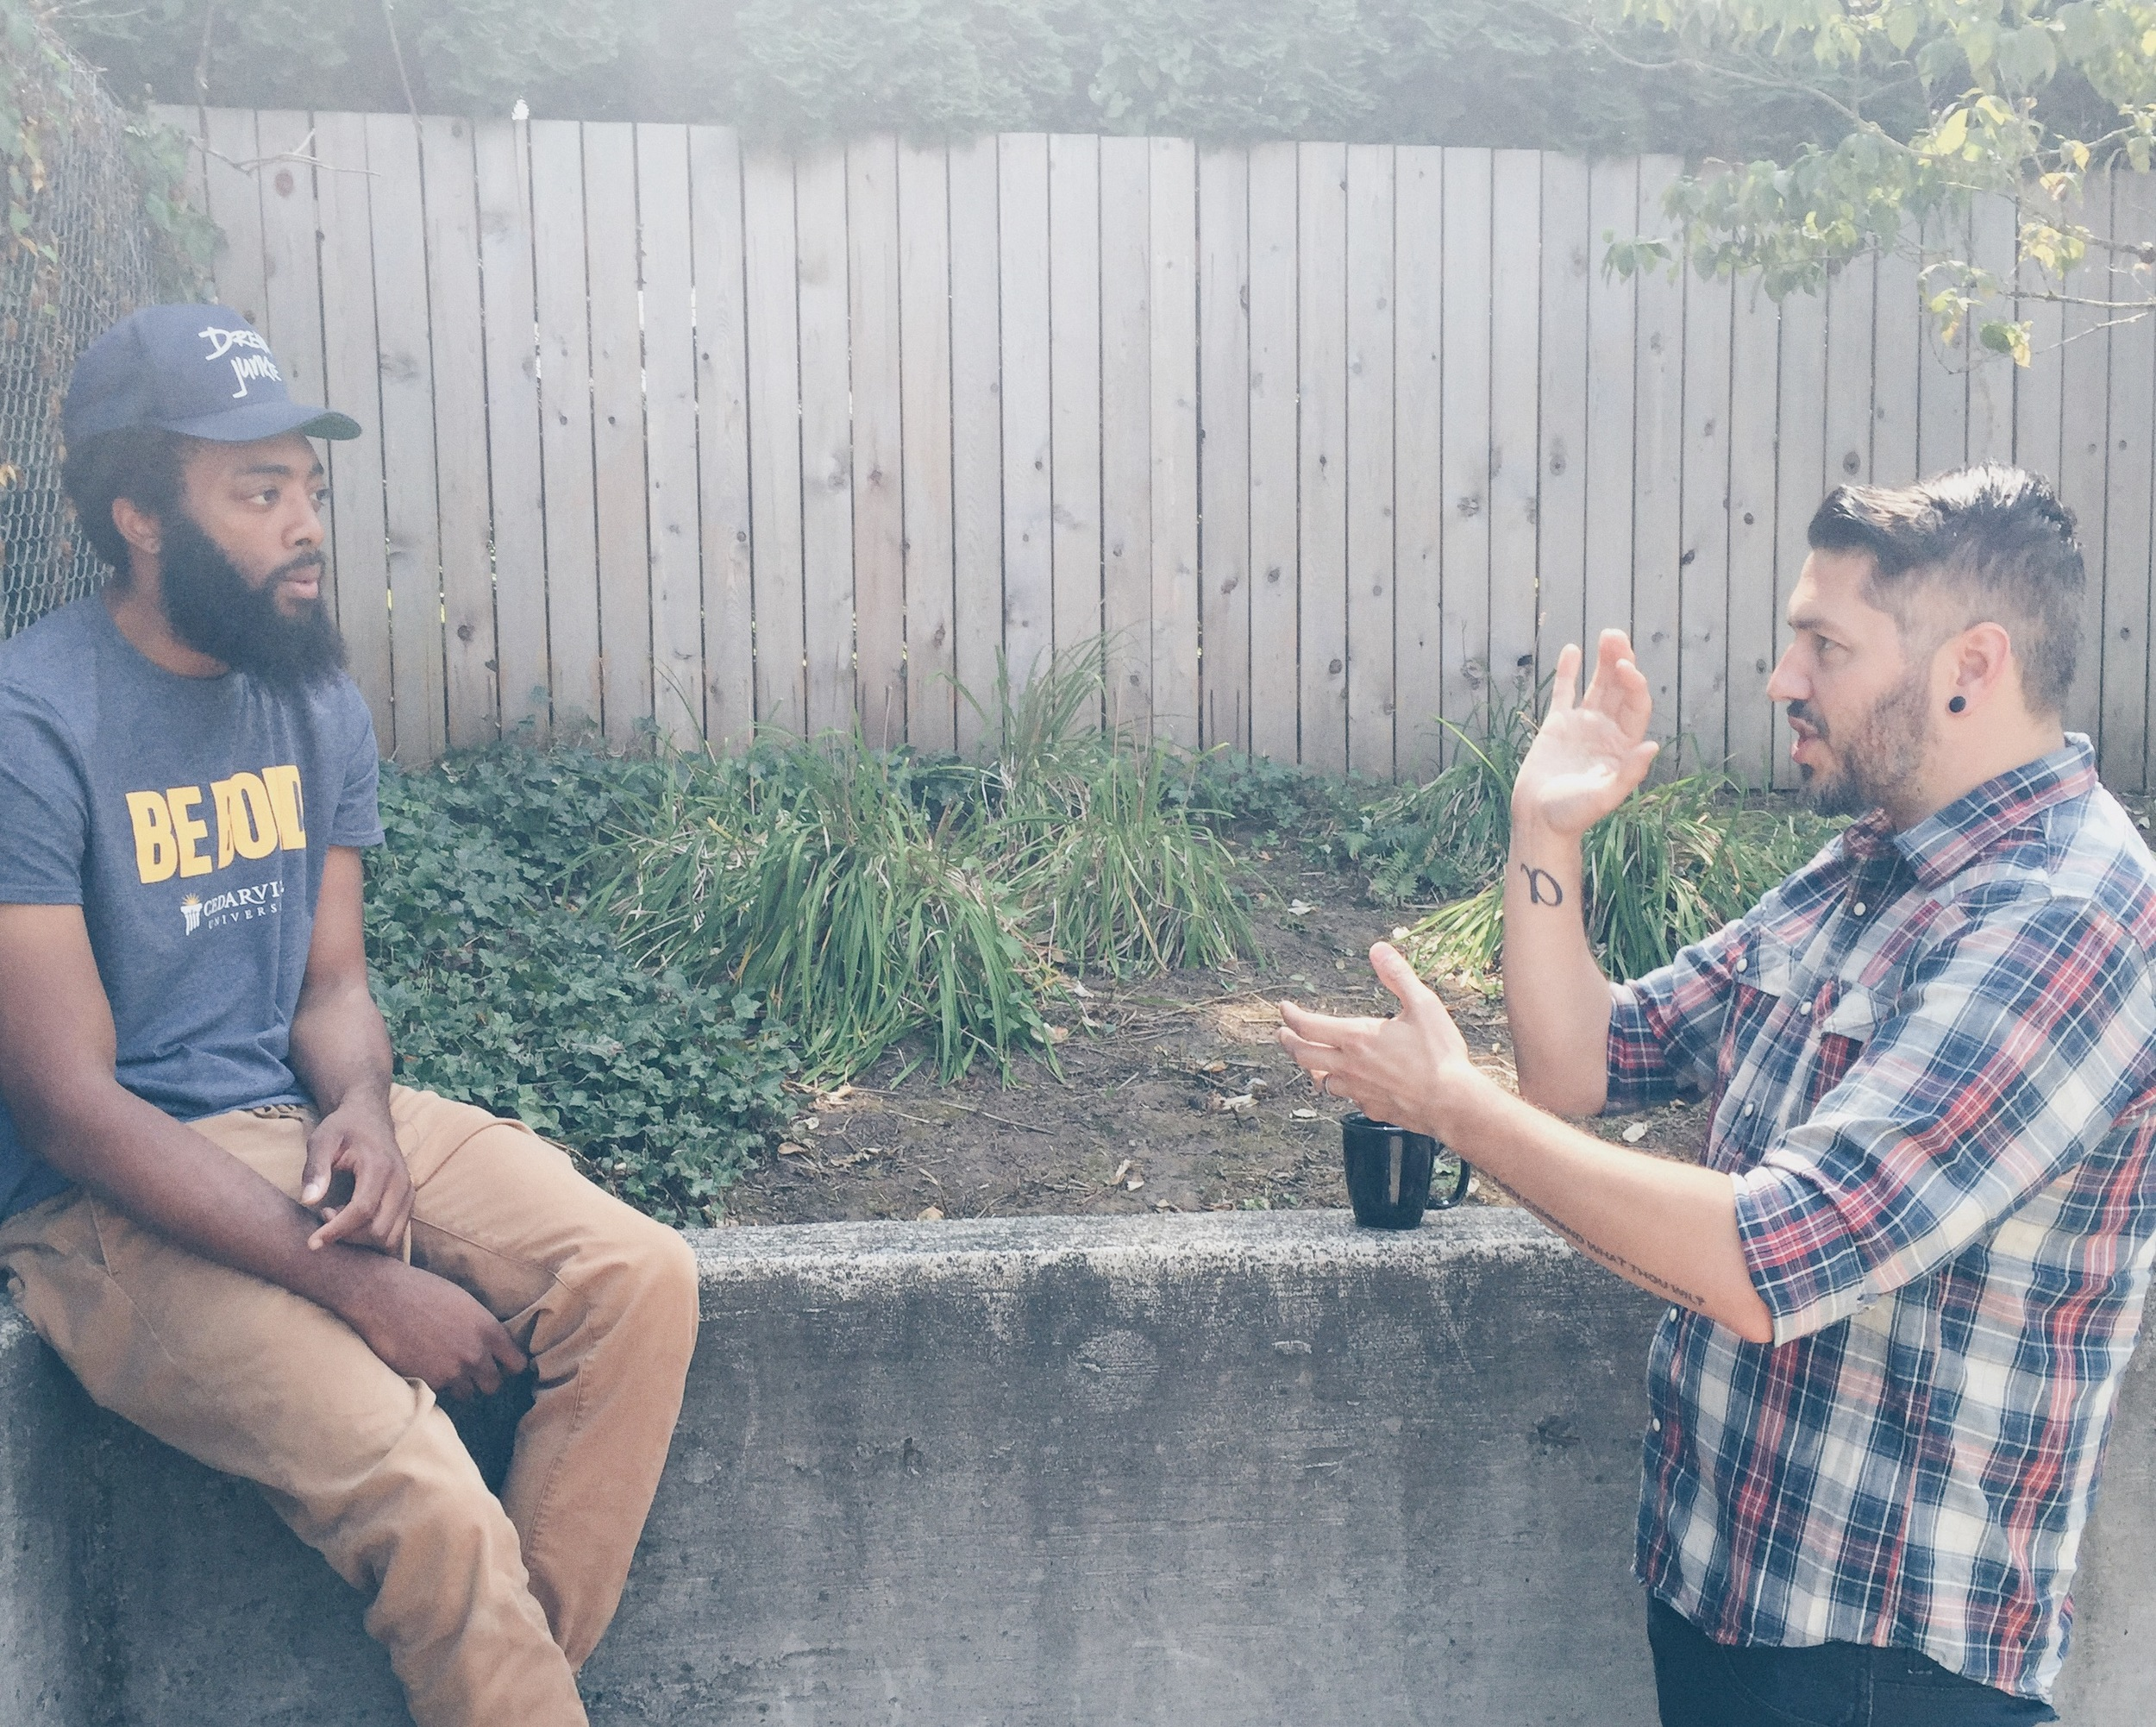 Thomas (on the right), talks to his labelmate, JGivens (on the left), discussing plans for an upcoming music video.